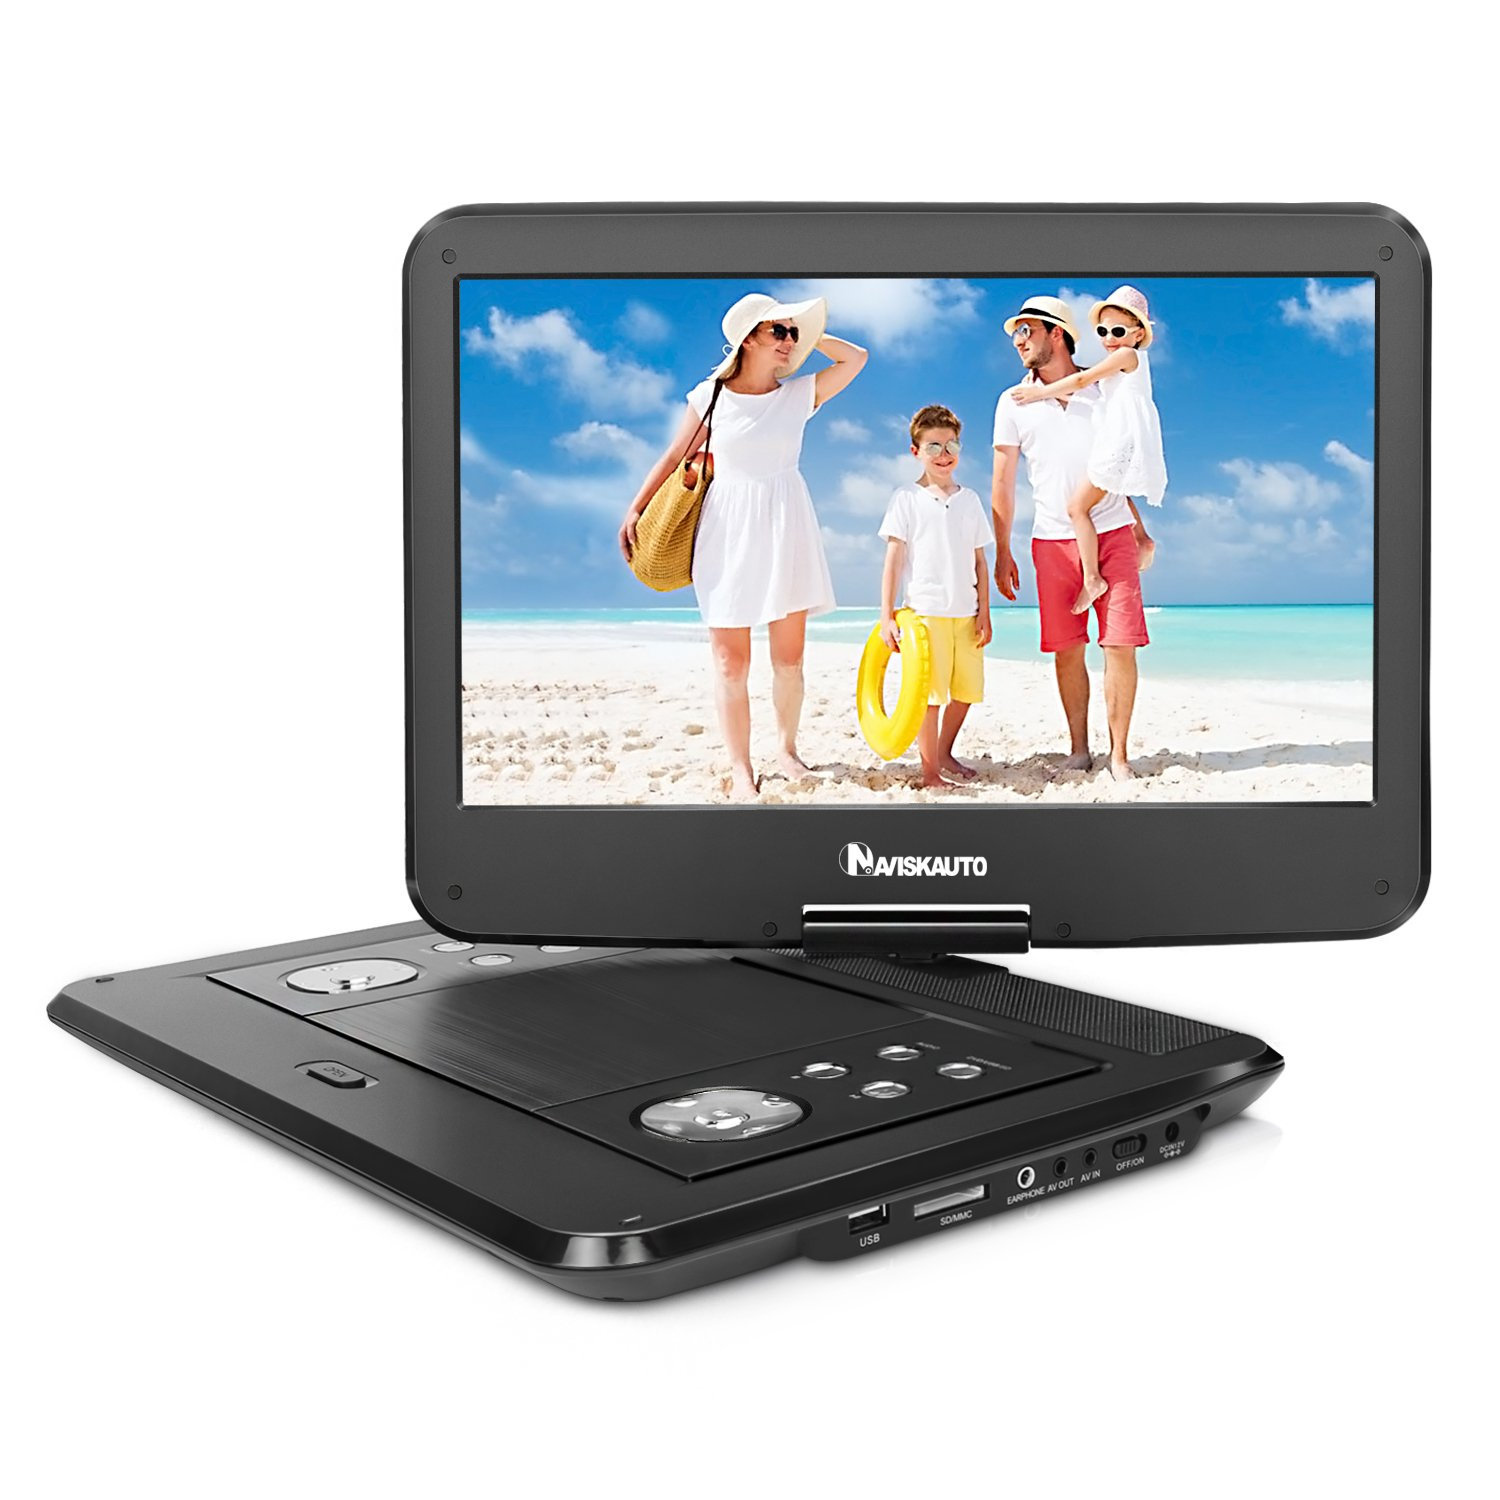 NAVISKAUTO 14 inch HD Portable DVD/CD Player USB/SD Reader with HD 1366x768 Digital TFT 270° Swivel Screen, 5-Hour Built-In Rechargeable Battery, 3m AC/DC Adapter and Carrying Case-Black (14 inches) by NaviSkauto